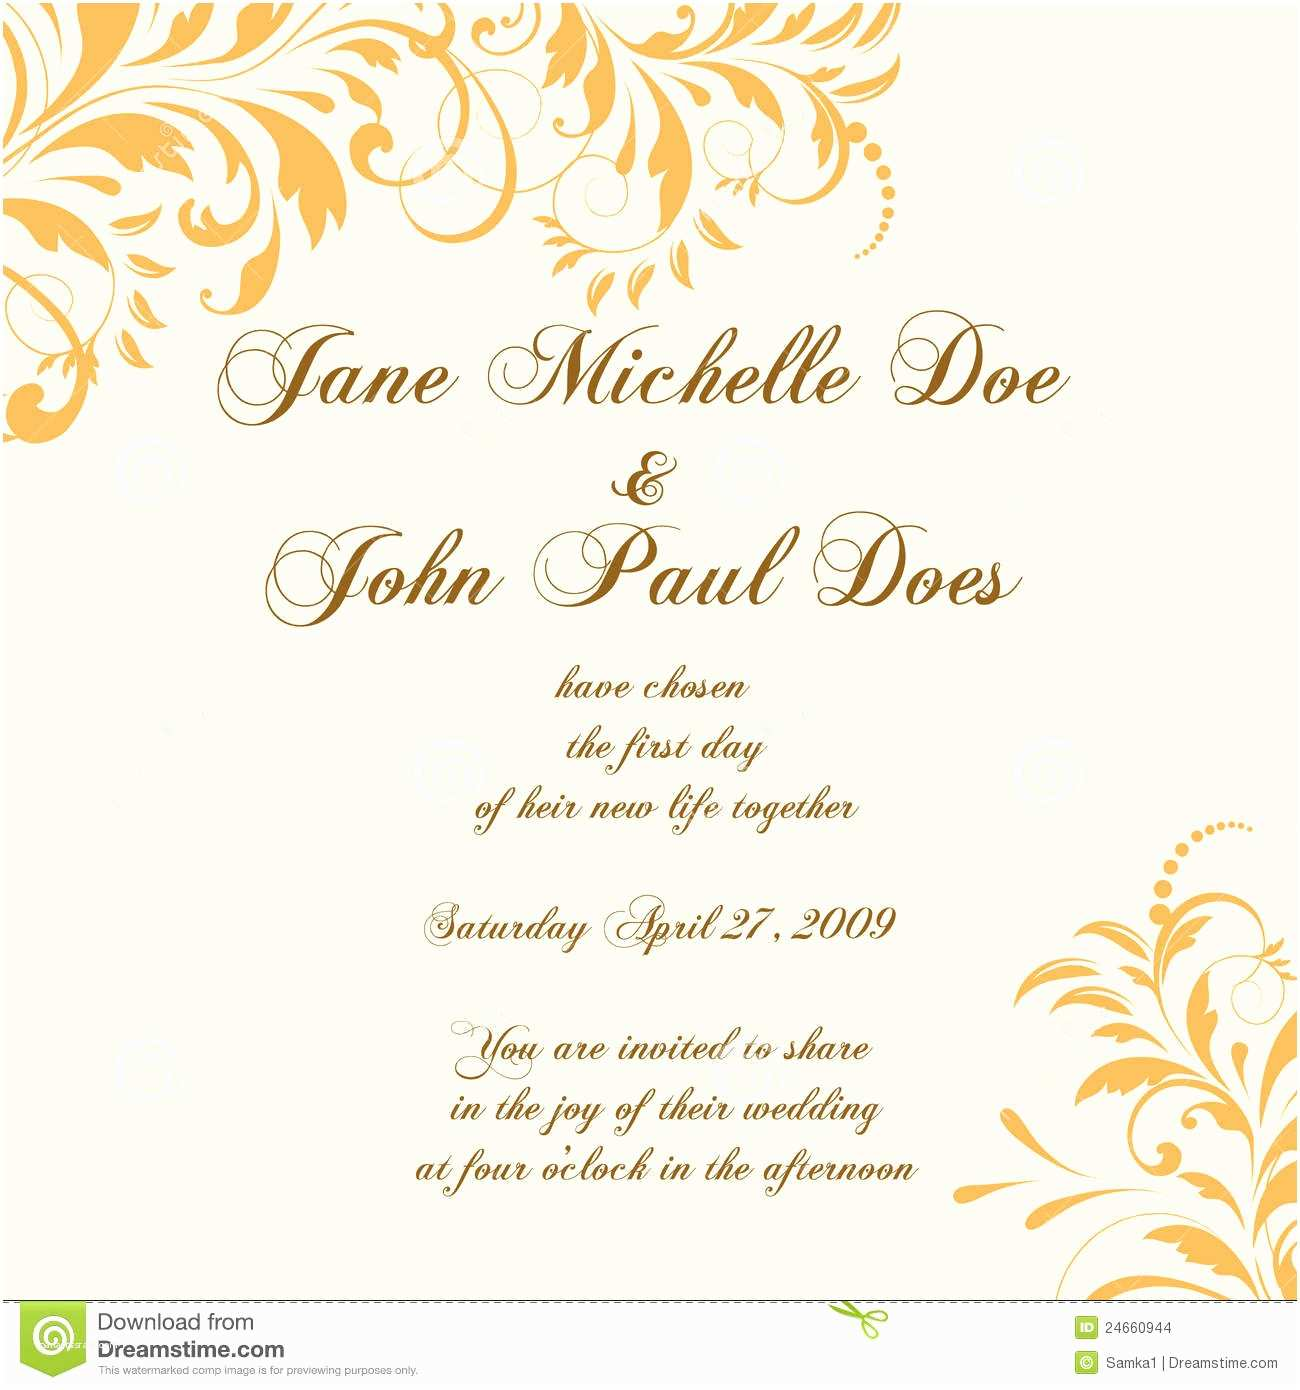 Small Wedding Invitation Cards Wedding Card Invitation with Abstract Floral Ba